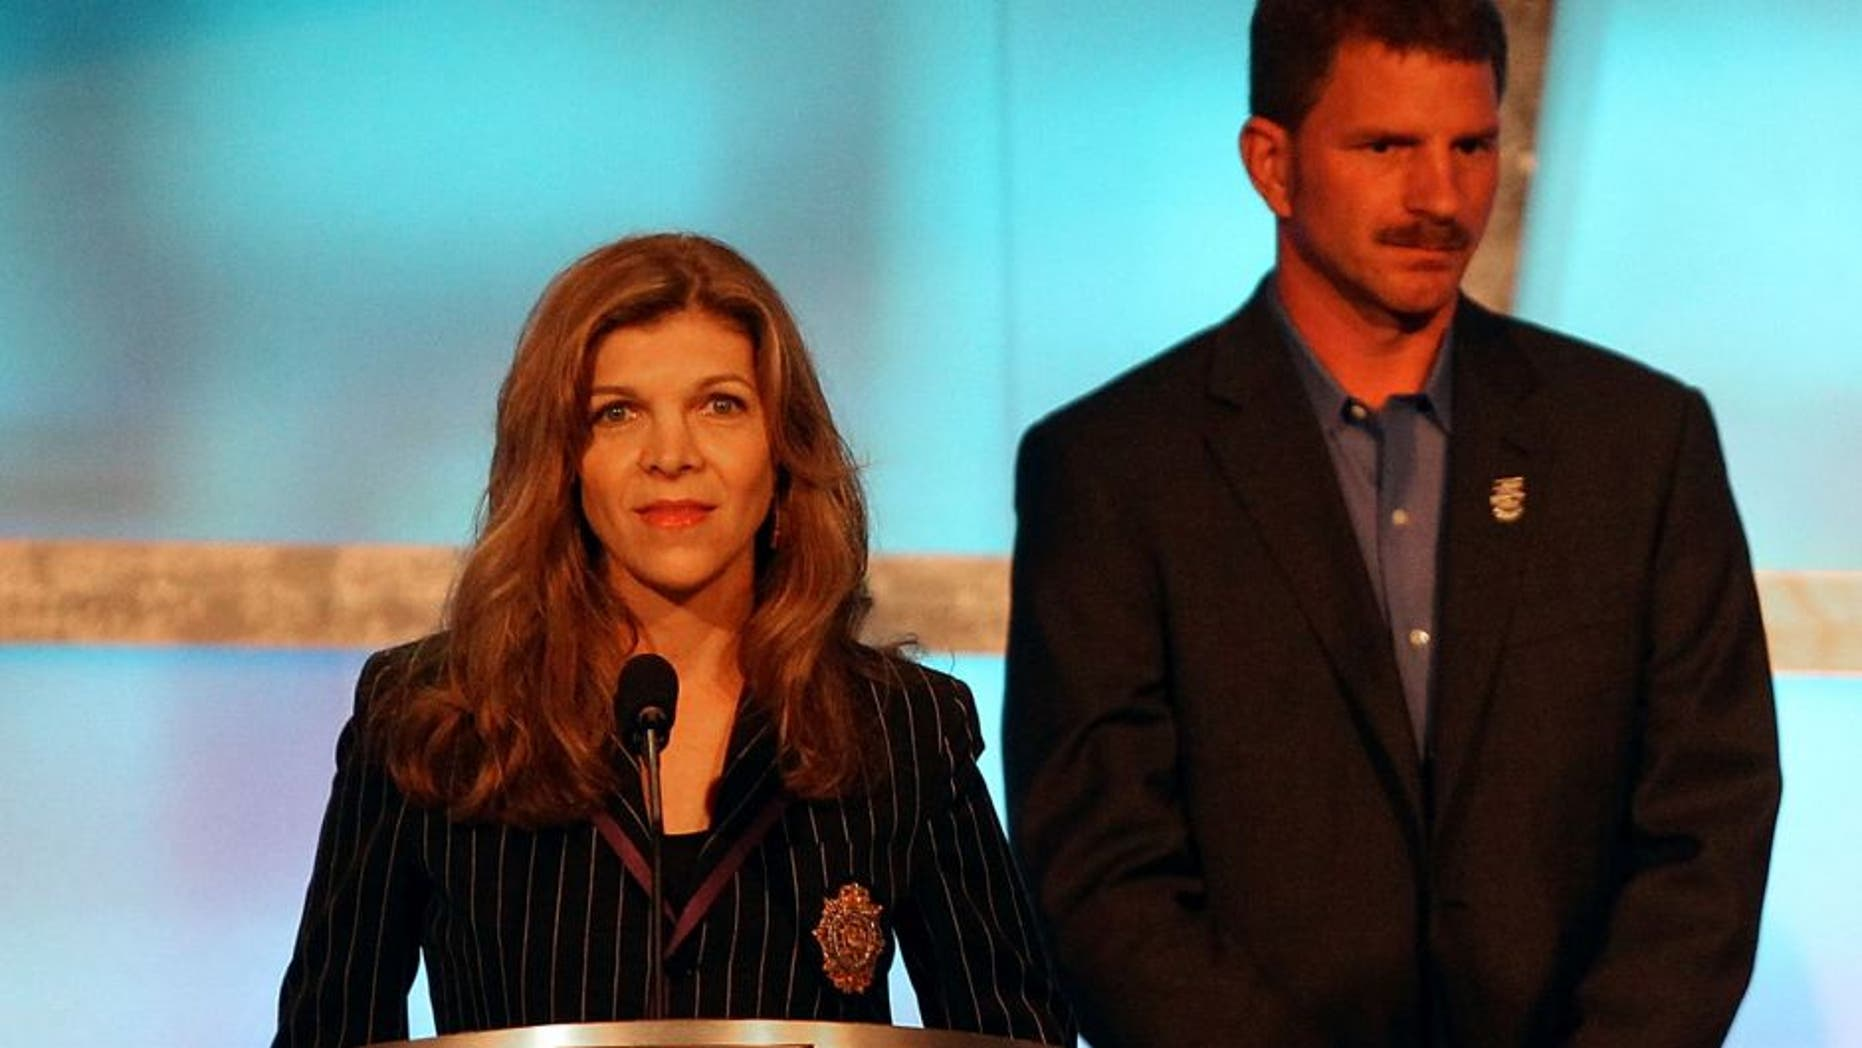 CHARLOTTE, NC - MAY 23: (L-R) Teresa Earnhardt speaks as Kerry Earnhardt, Kelley Earnhardt Elledge, Dale Earnhardt Jr. and Taylor Earnhardt stand on stage as Dale Earnhardt Sr. gets inducted into the 2010 NASCAR Hall of Fame Induction Ceremony at the Charlotte Convention Center on May 23, 2010 in Charlotte, North Carolina. (Photo by Streeter Lecka/Getty Images)